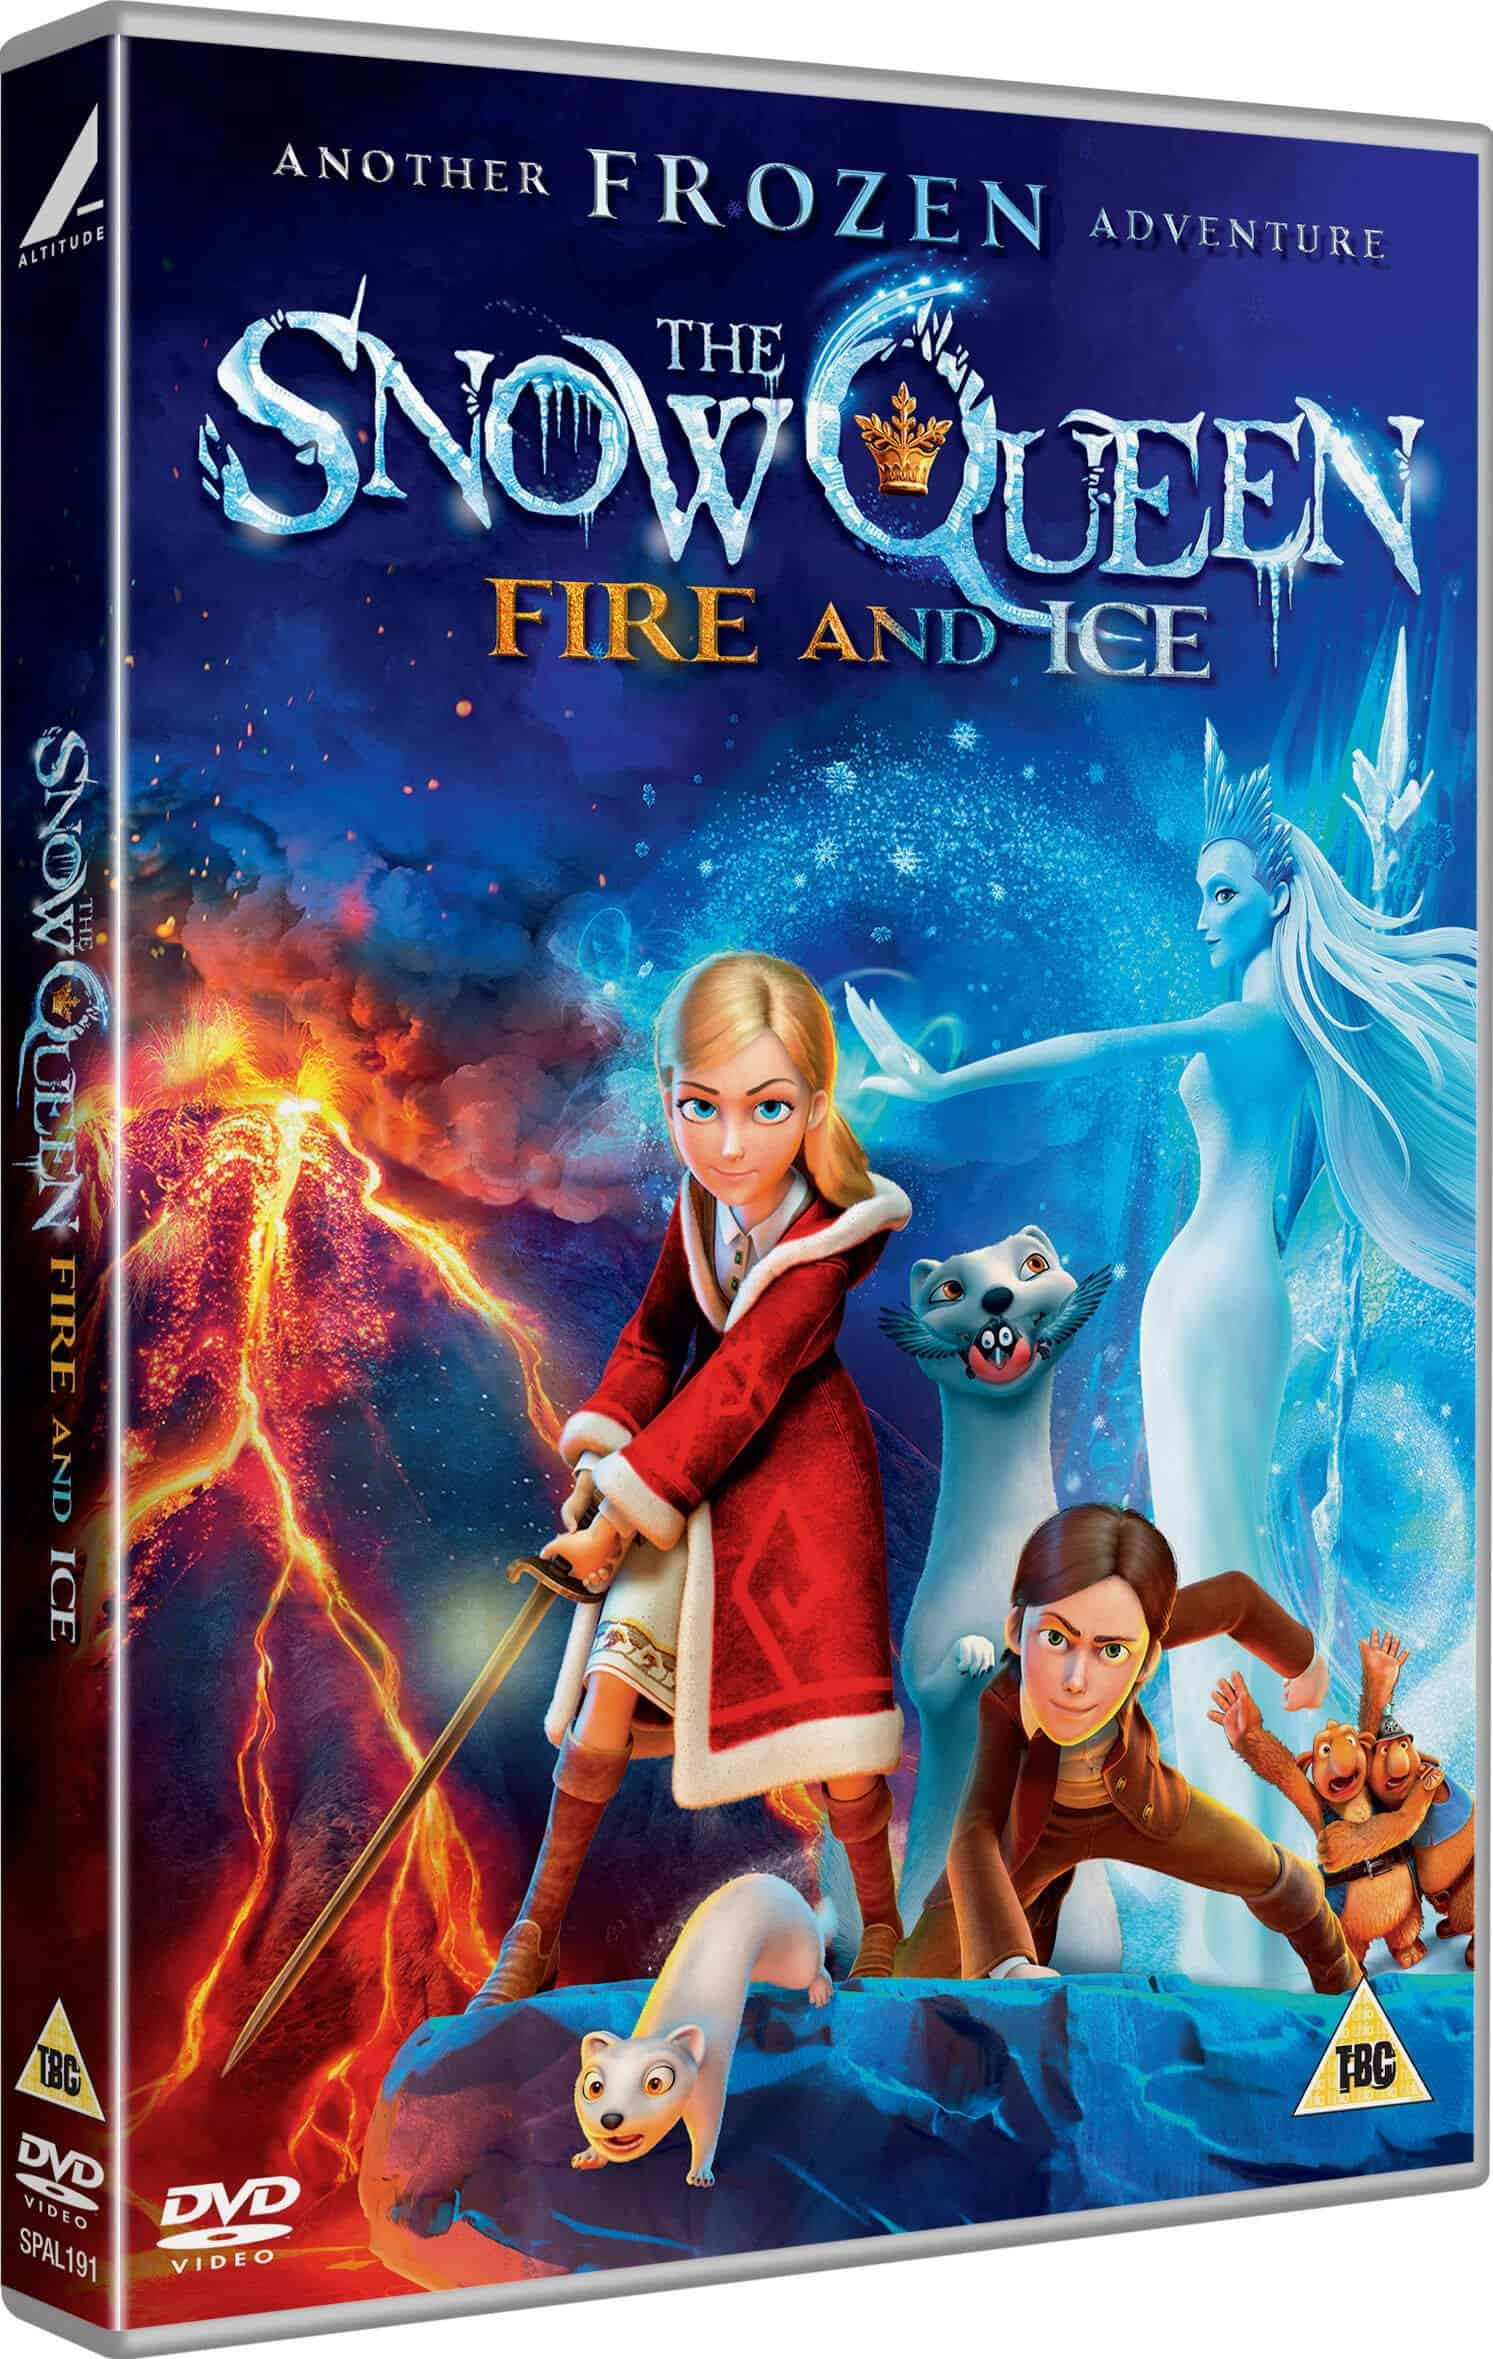 The Snow Queen Fire and Ice Review